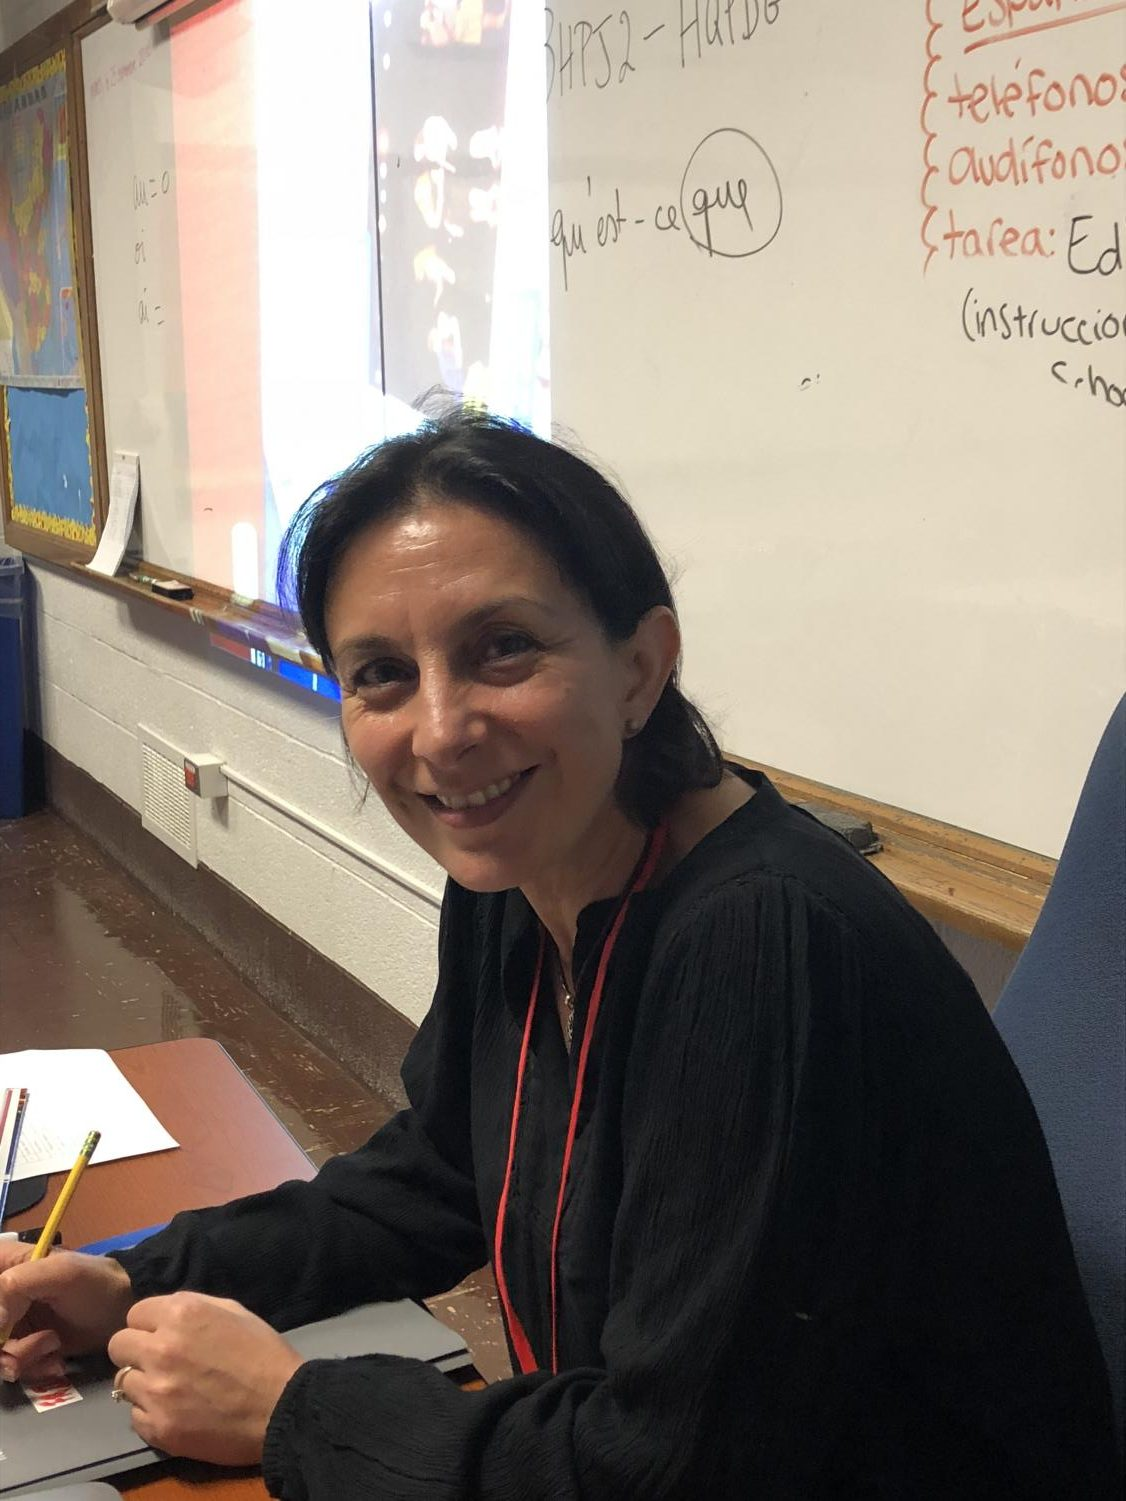 Meltem Spicer shares her passion for the French language with others everyday through teaching.